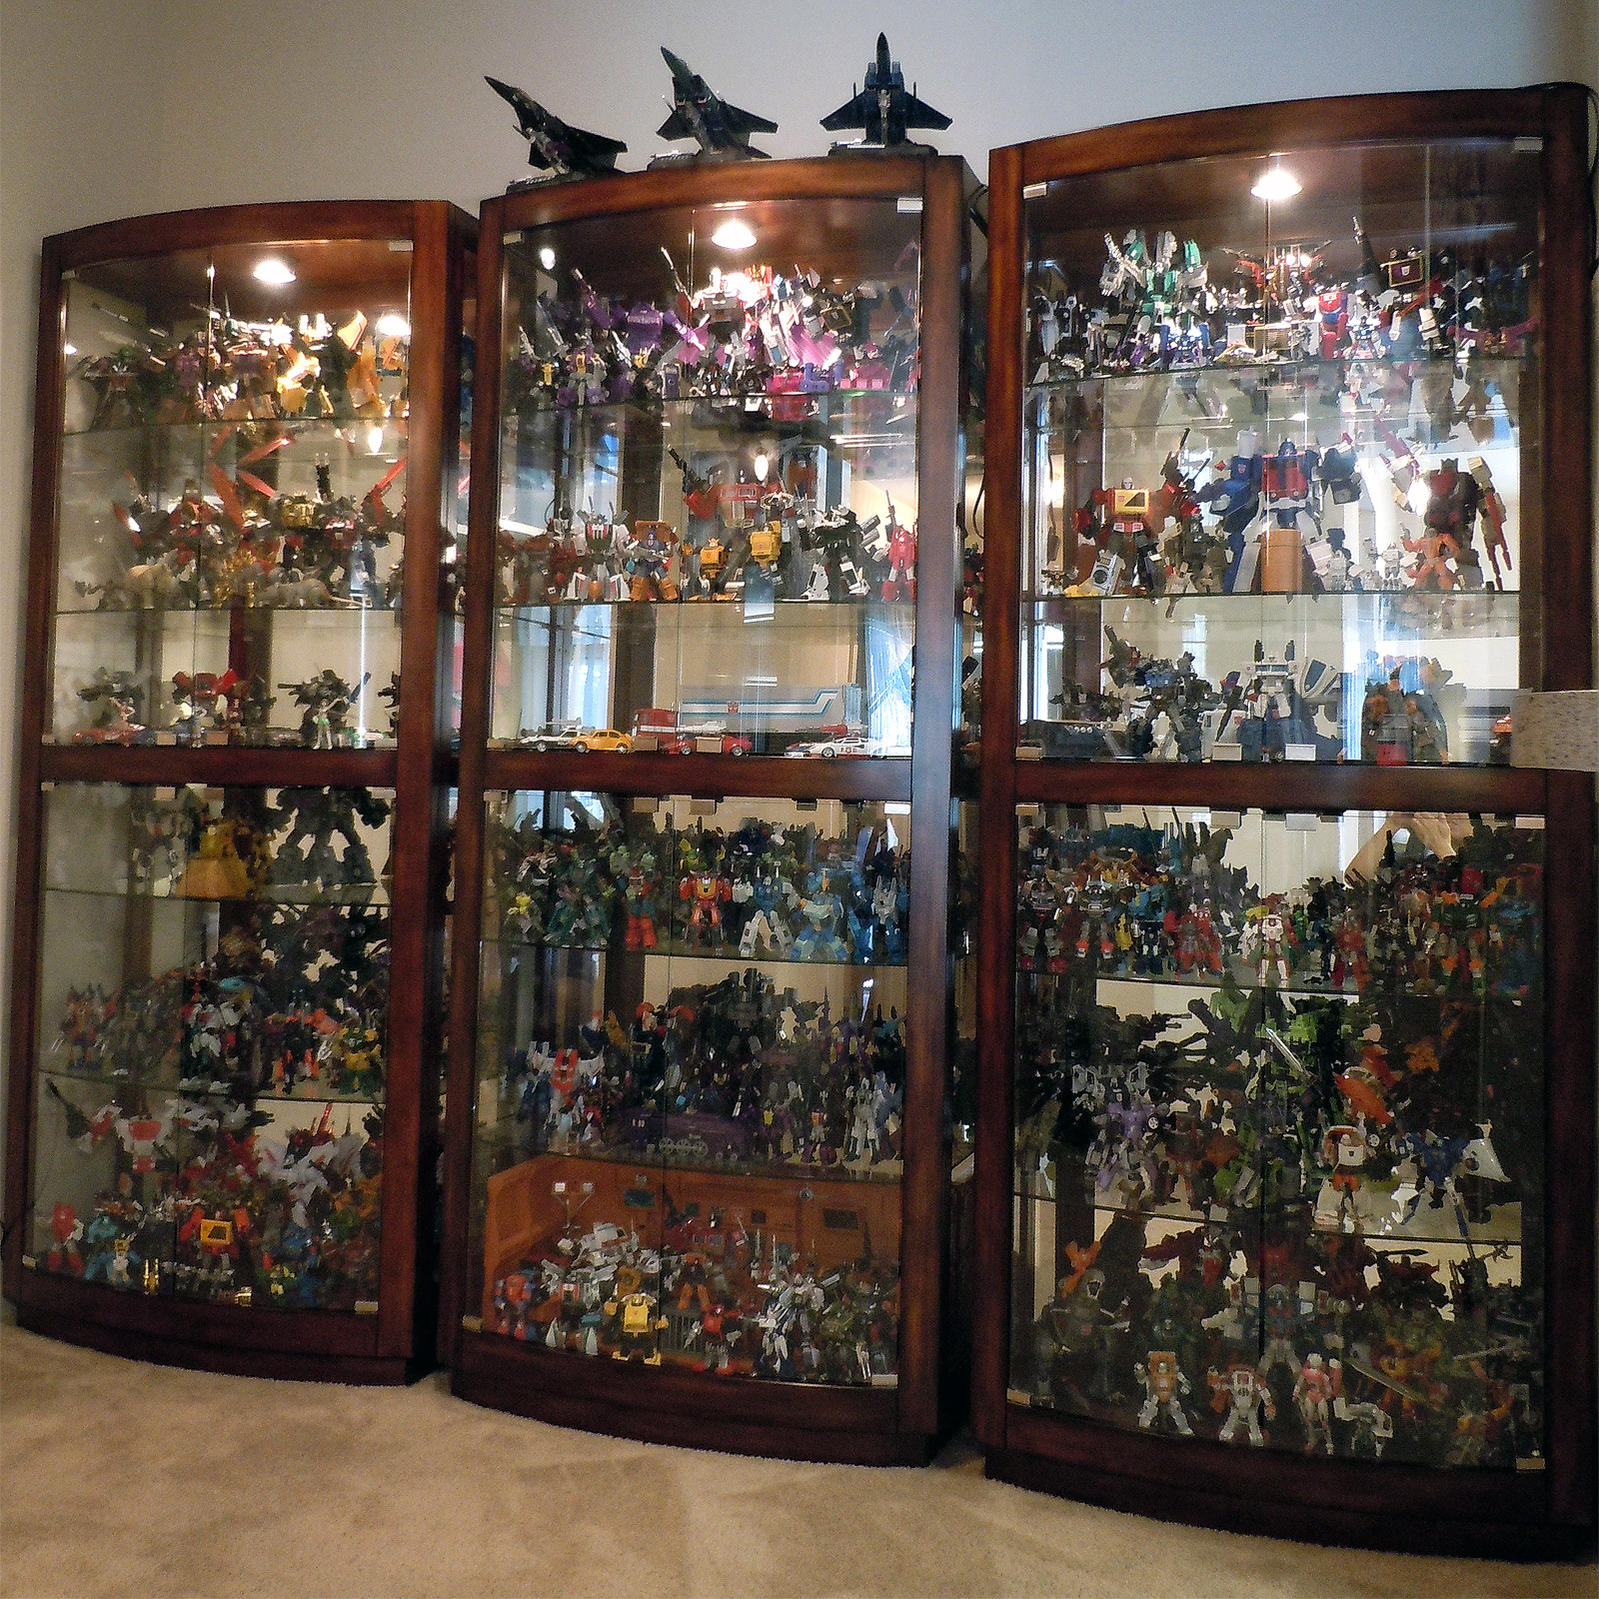 Superieur The Not Detolf Display Cases Thread | TFW2005   The 2005 Boards